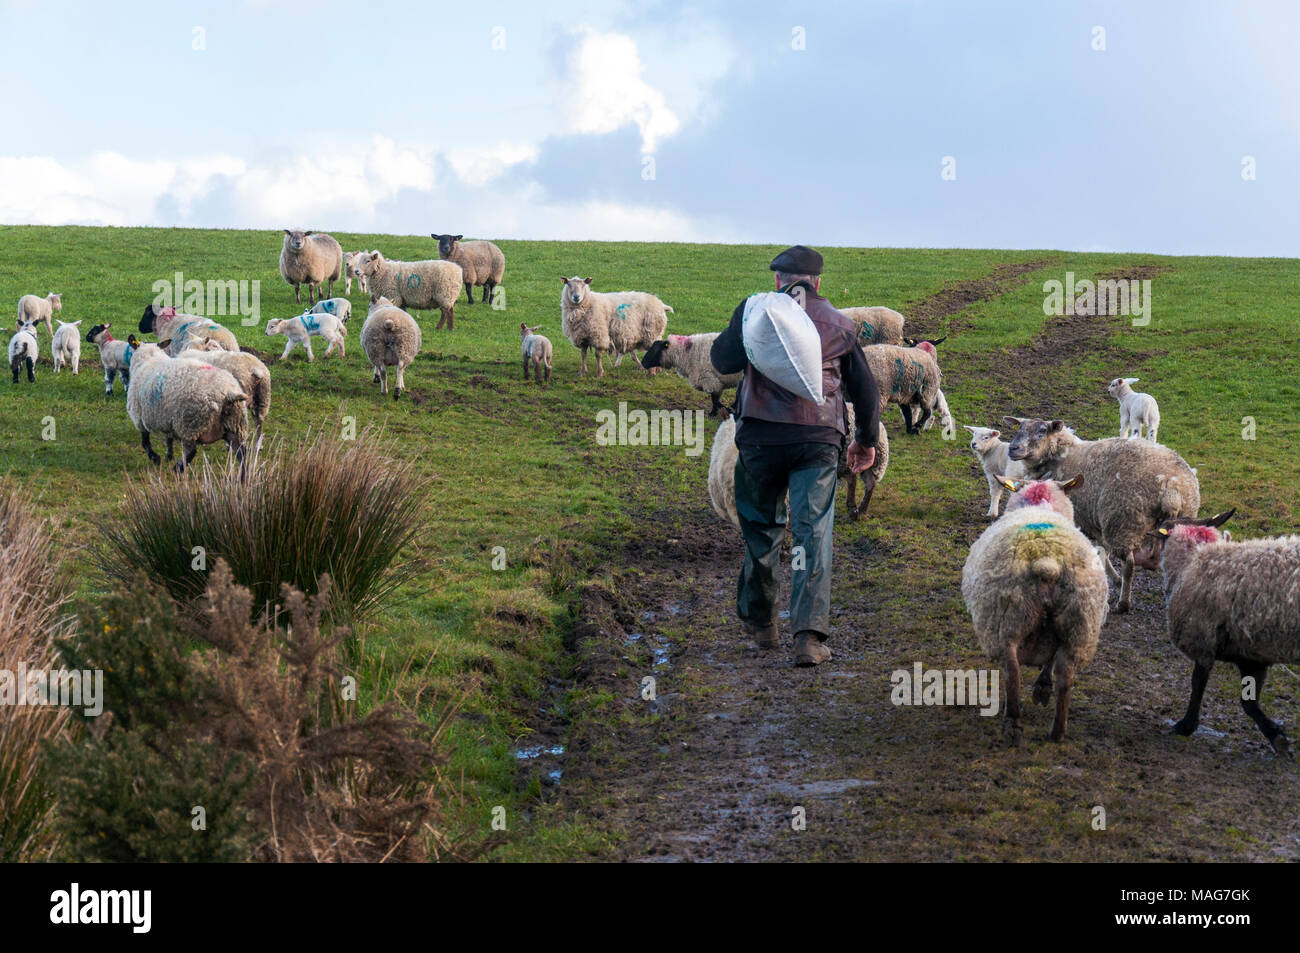 A farmer brings a bag of feed to his ewes sheep and lambs in a Donegal field - Stock Image